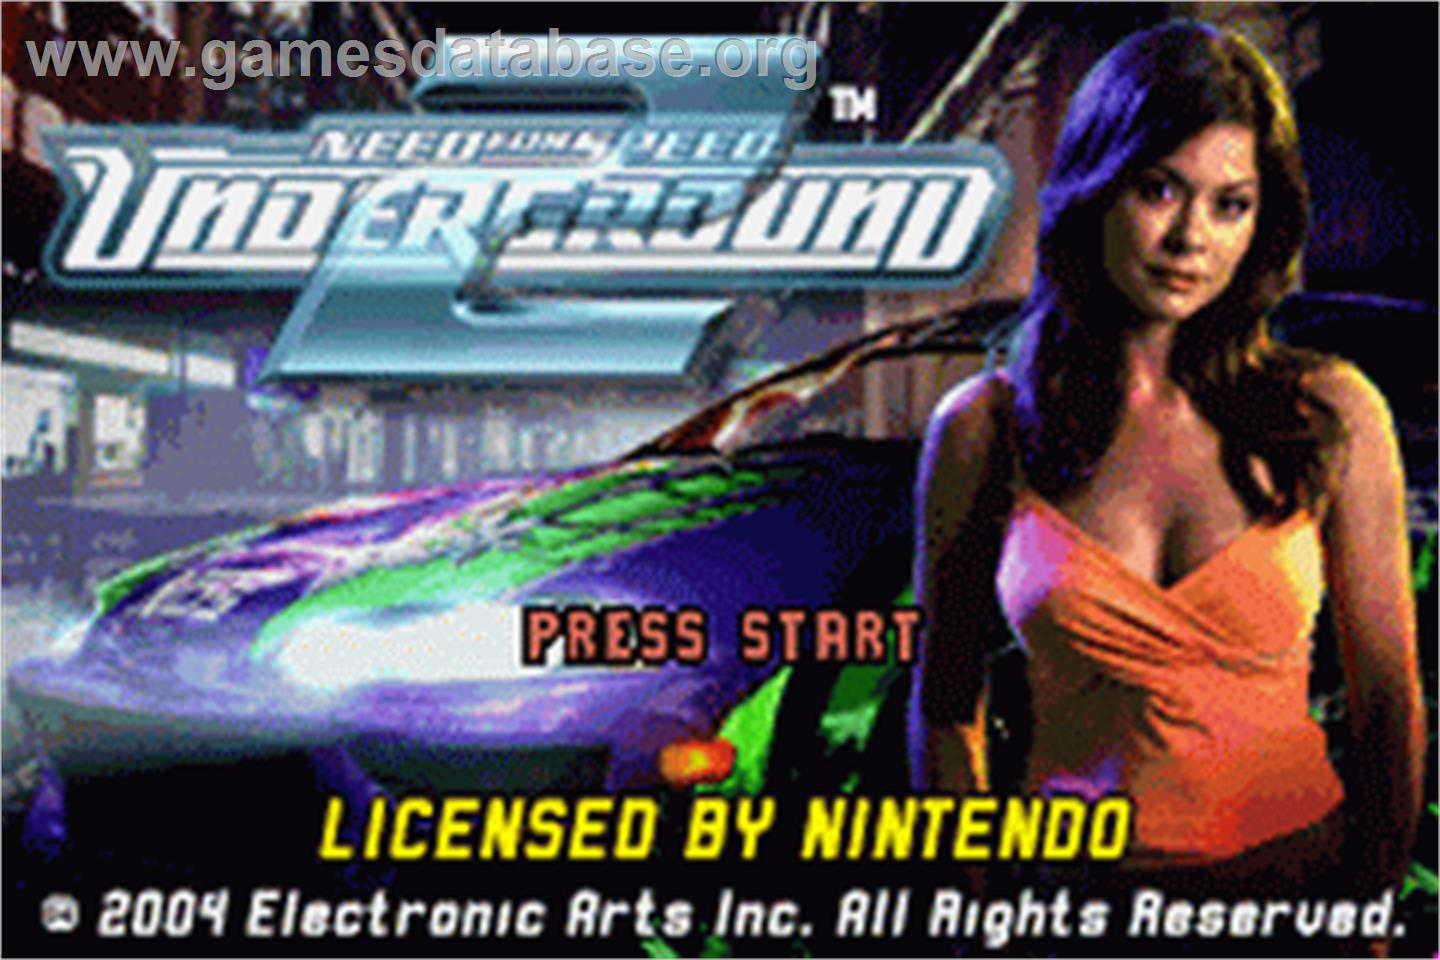 Need for Speed Underground 2 - Nintendo Game Boy Advance - Artwork - Title Screen